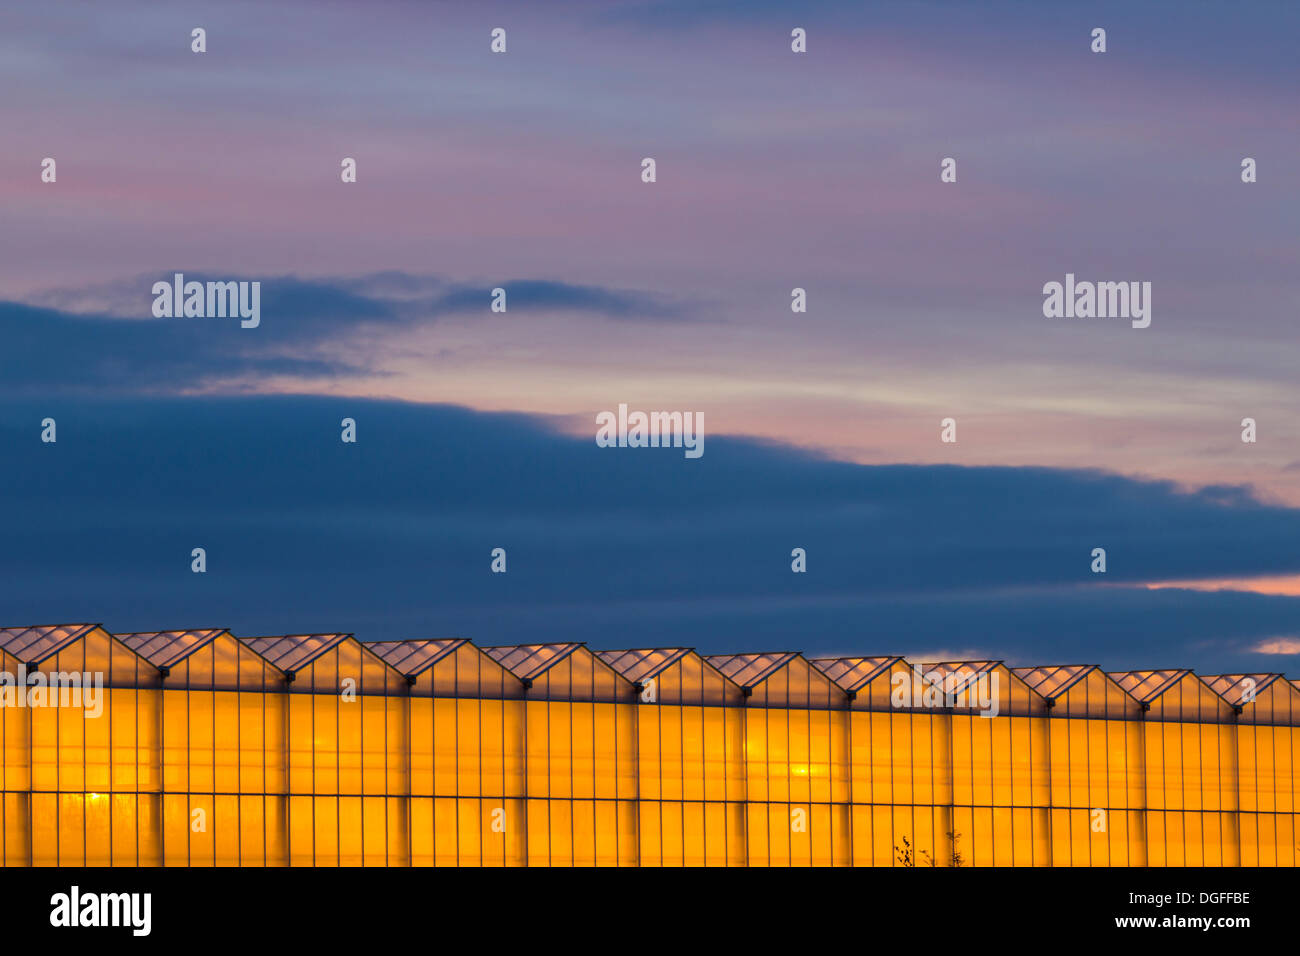 Billingham, Cleveland, UK. 21st, Oct, 2013. Pre sunrise sky over North Bank Growers greenhouses in Billingham. 38 acres (15ha) of greenhouses, heated by C02 and steam bi products from nearby fertilizer factory, used to grow tomates all year round. Credit:  ALANDAWSONPHOTOGRAPHY/Alamy Live News - Stock Image